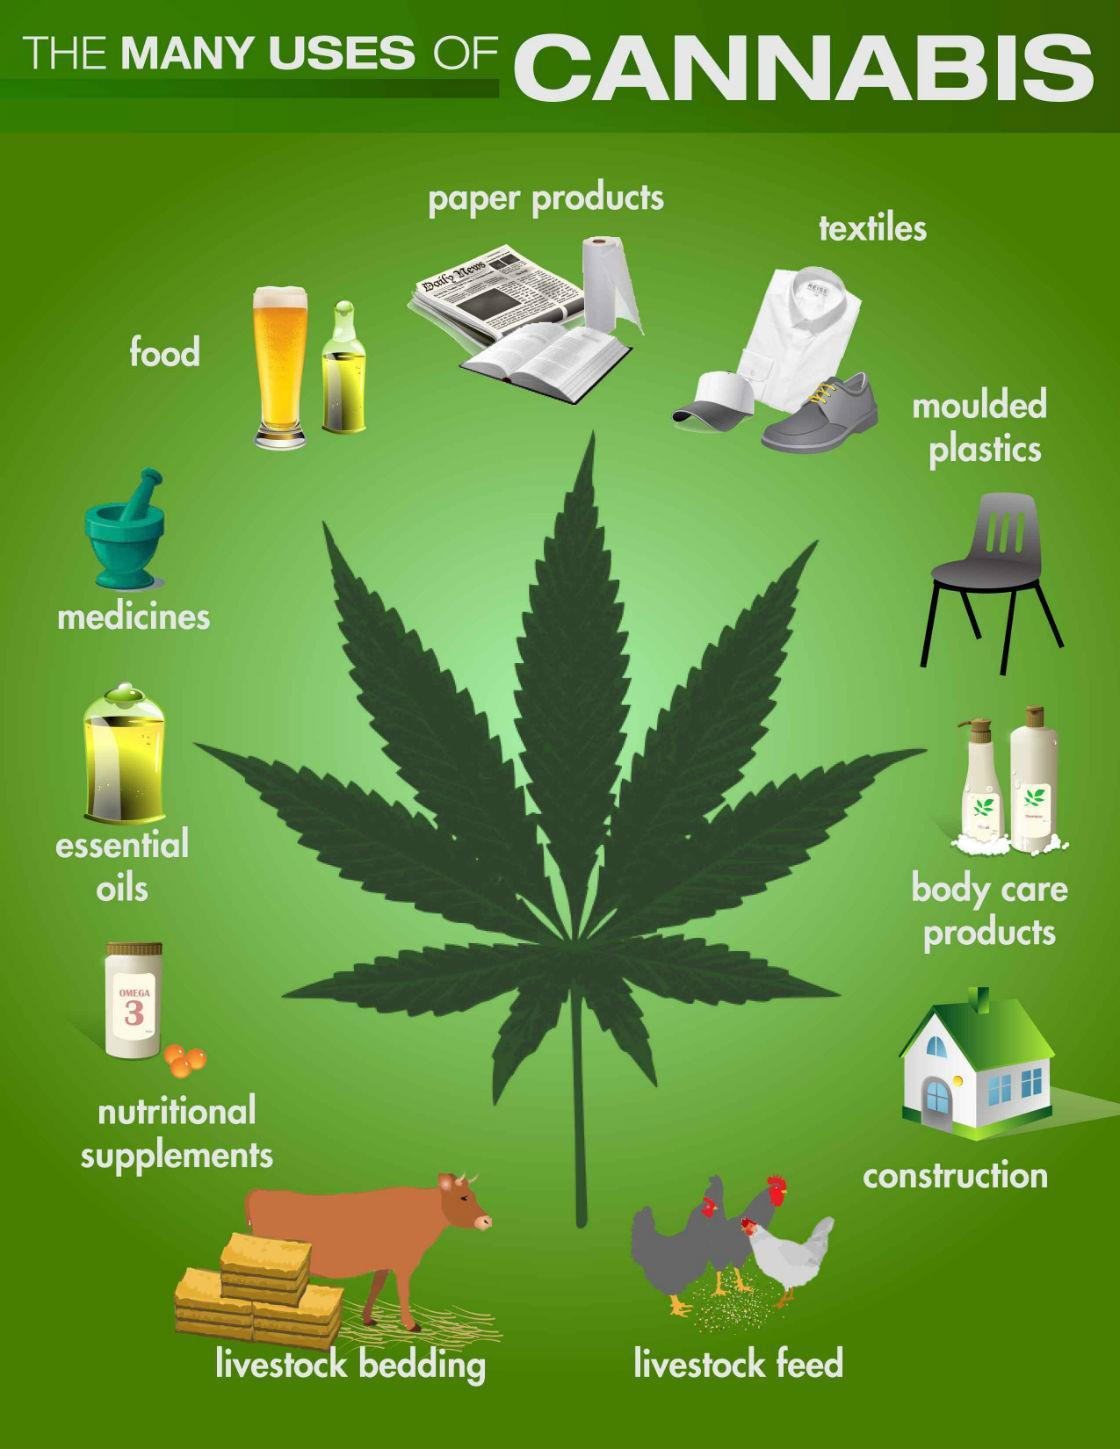 Chart on the ways Cannabis can be used